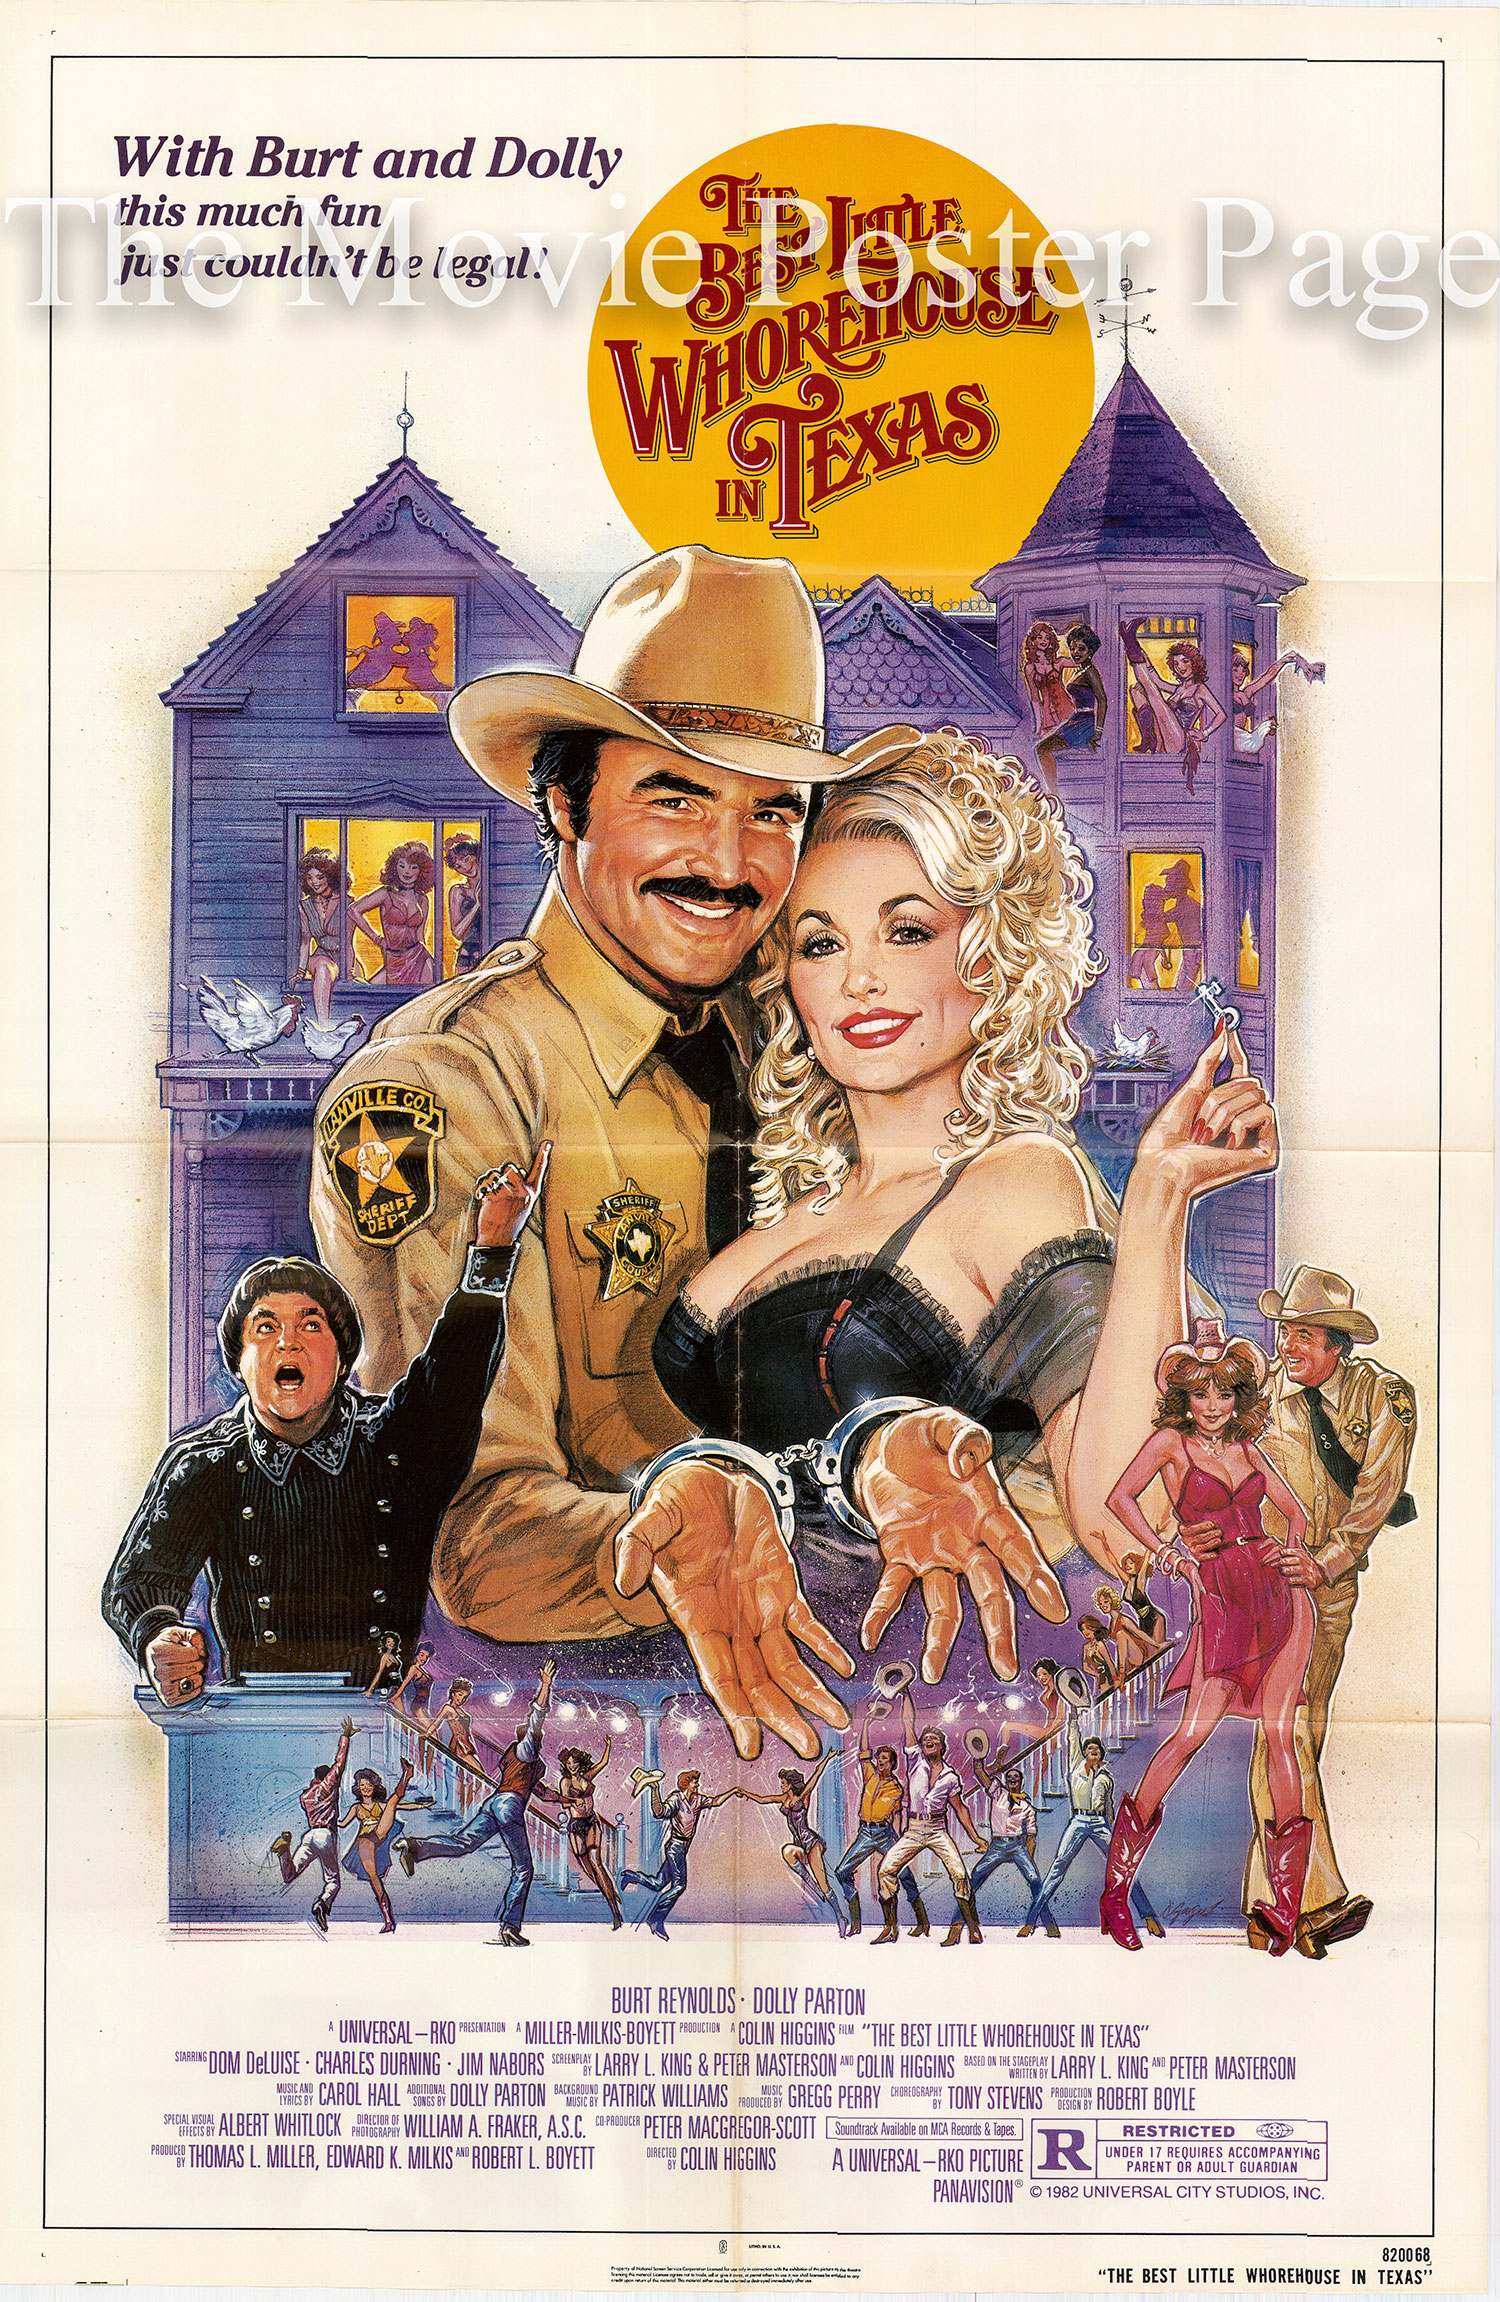 Pictured is a US one-sheet for the 1982 Colin Higgins film The Best Little Whorehouse in Texas starring Burt Reynolds.